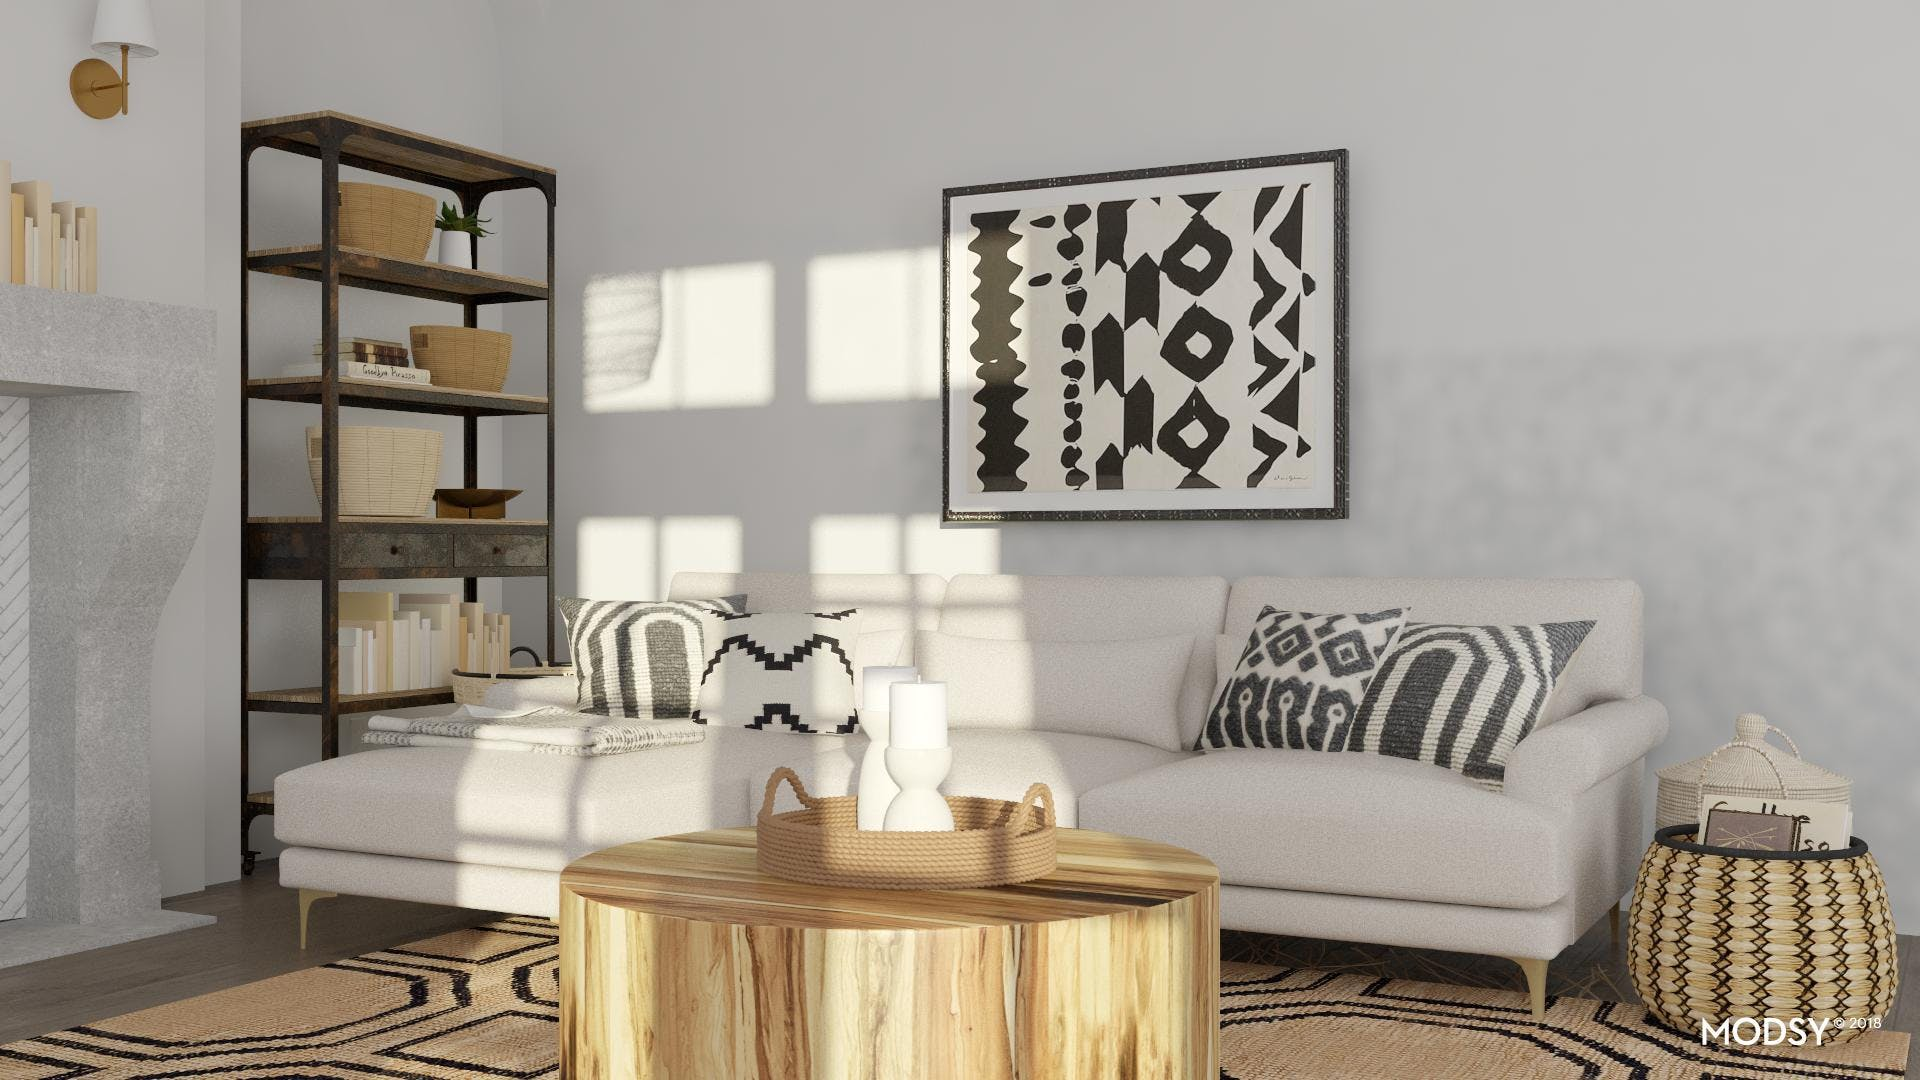 Mixing Patterns In Black and White